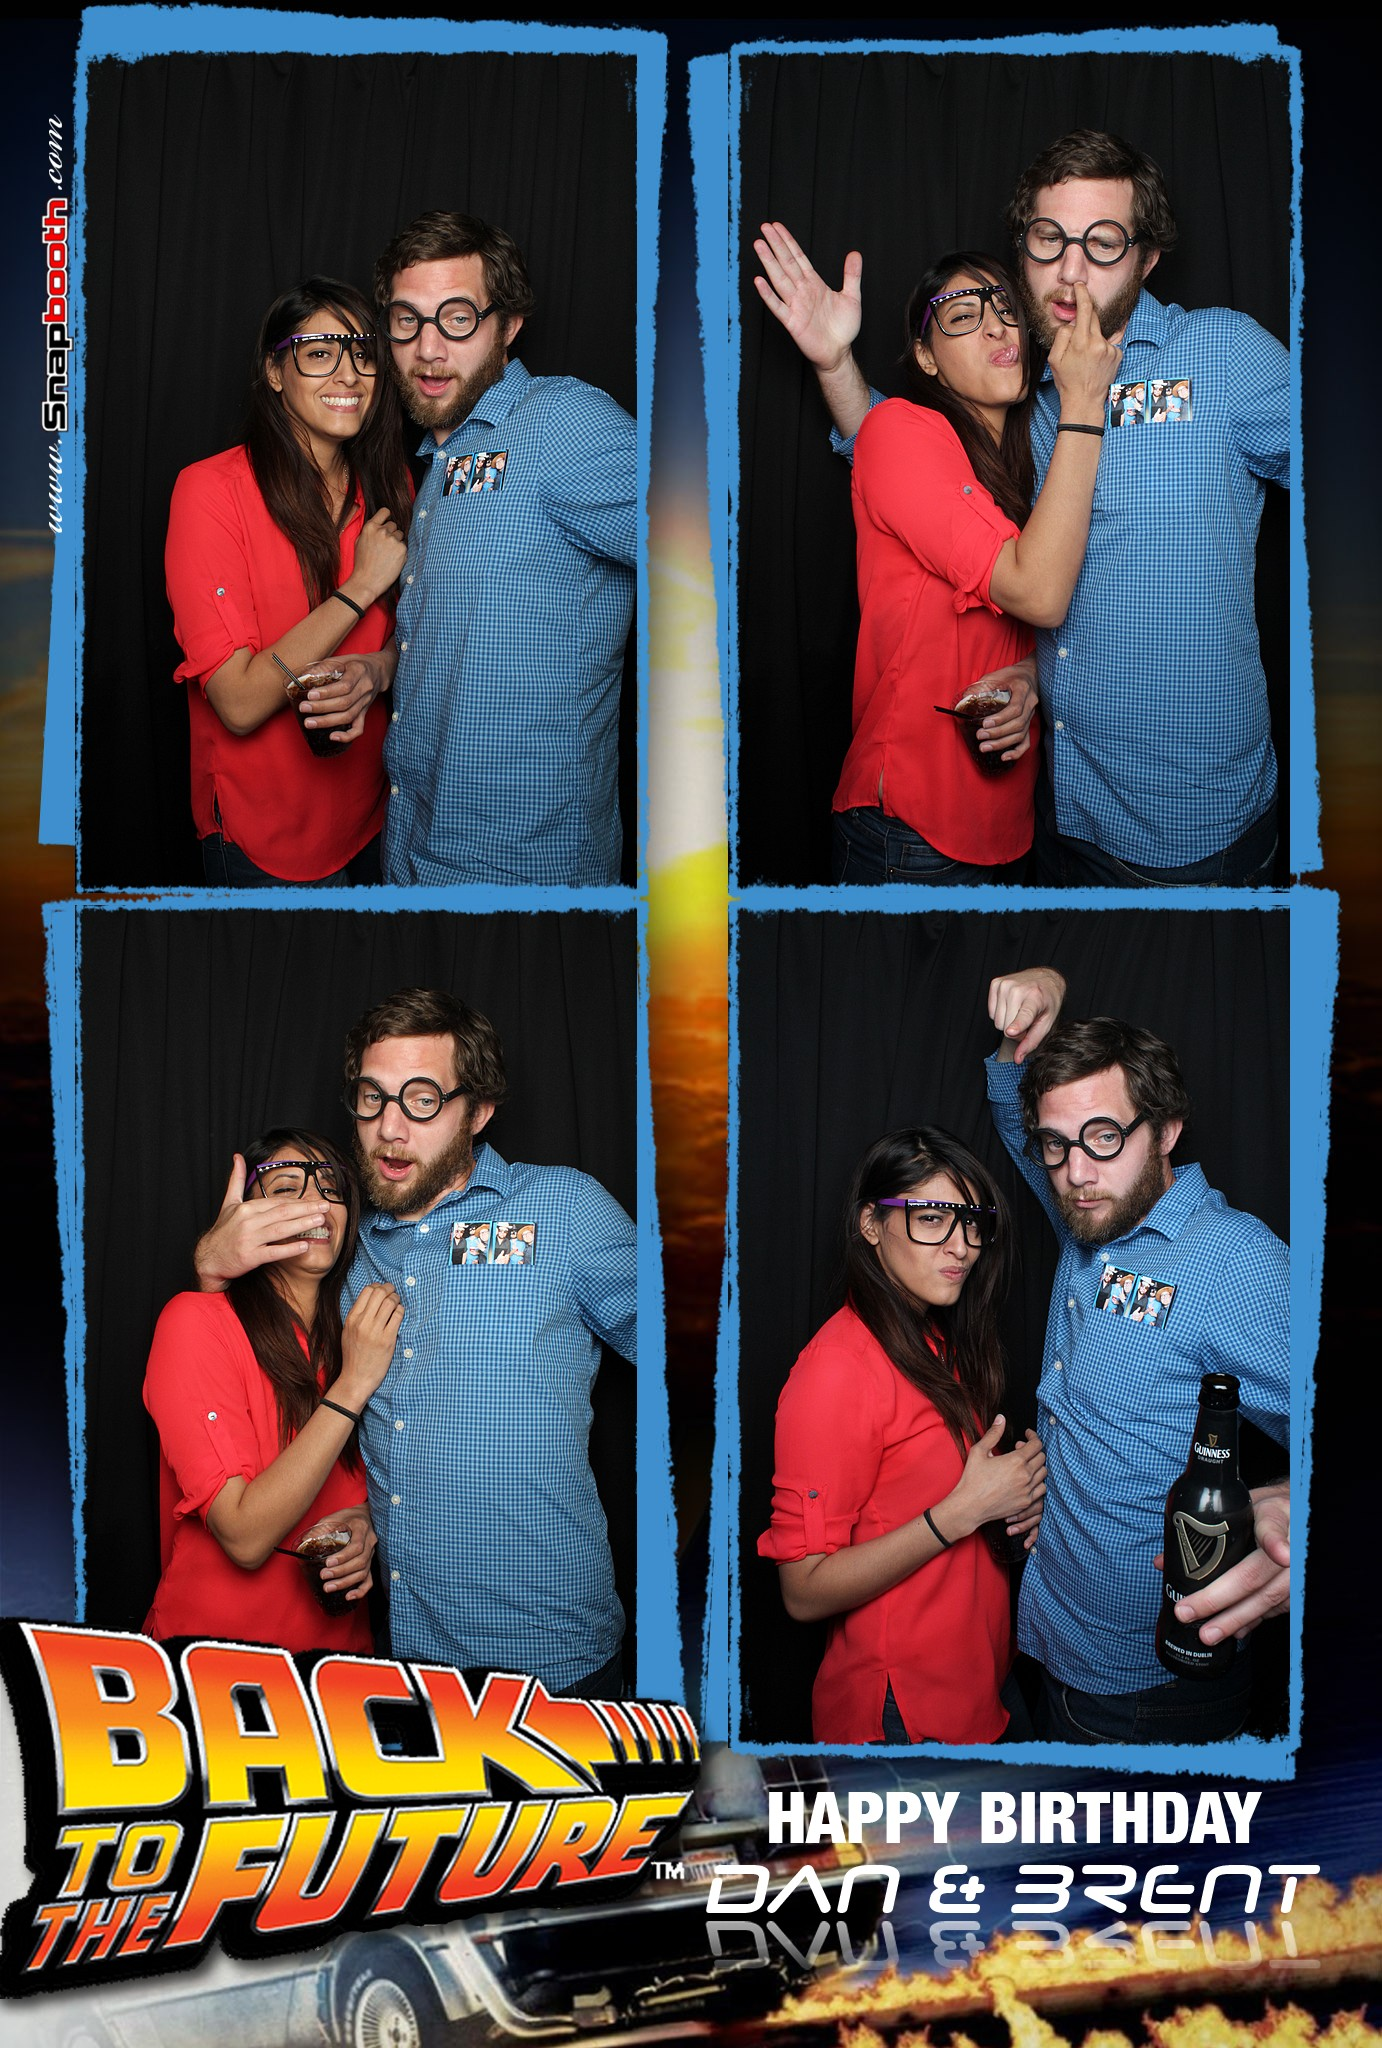 //www.snapbooth.com/wp-content/uploads/2017/08/Dan-Brent-Birthday.jpg